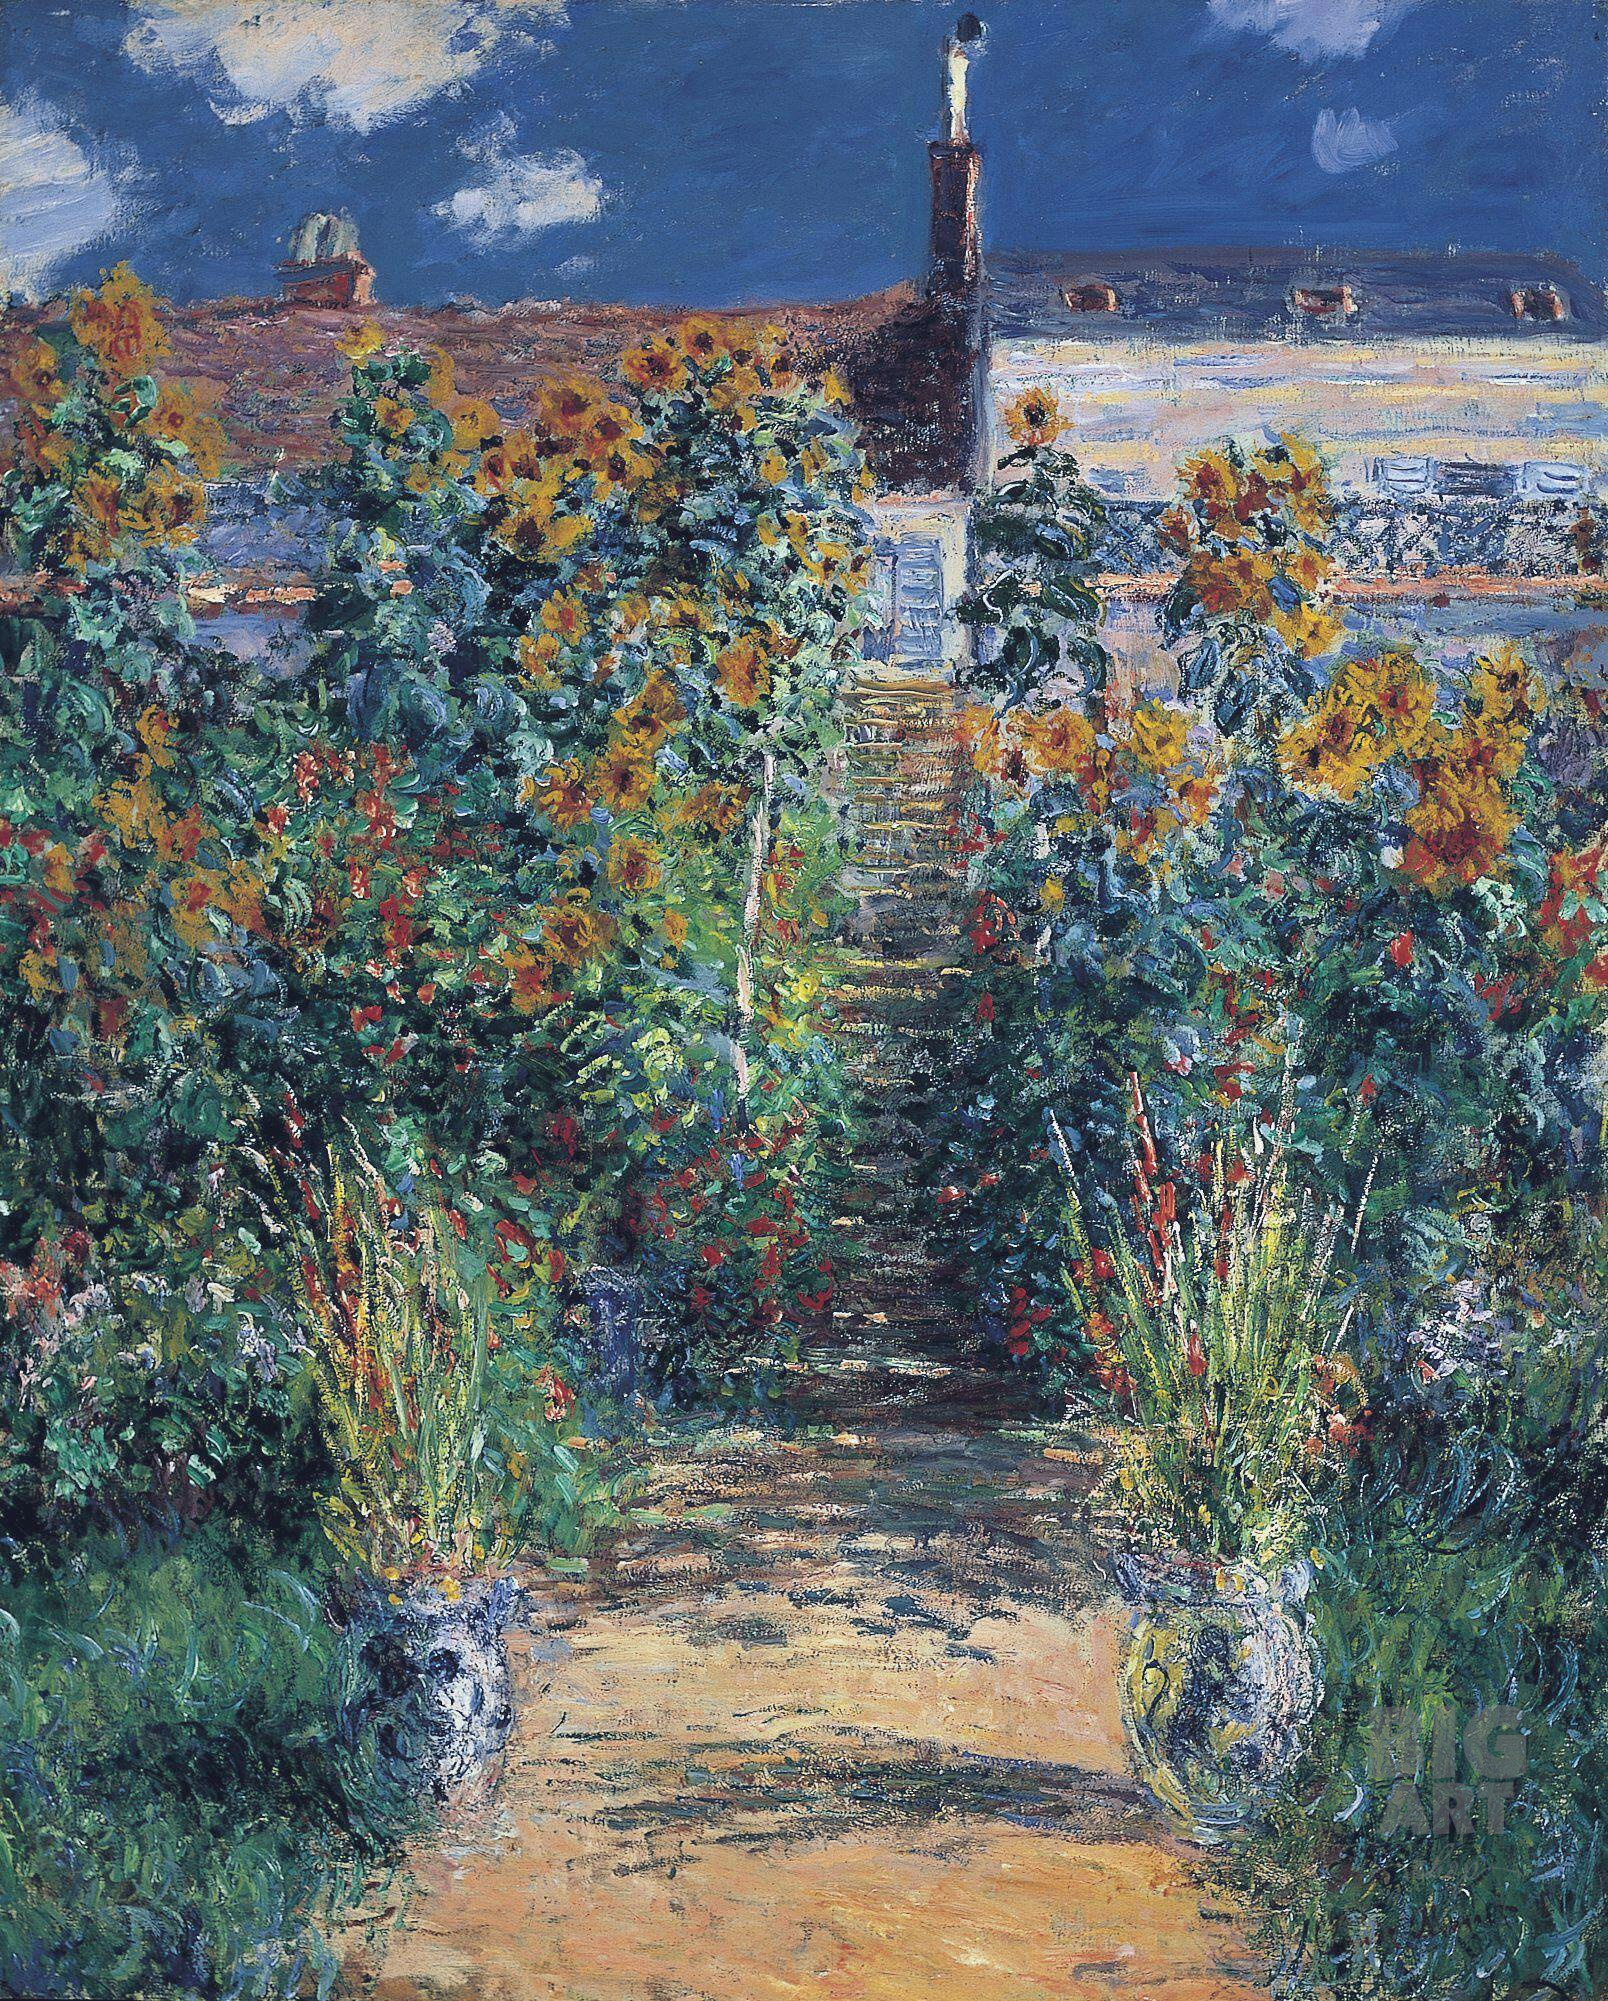 """Monet's Study for """"The Artist's Garden at Vétheuil"""" Shown with National  Gallery of Art Painting for First Time - Alain.R.Truong"""